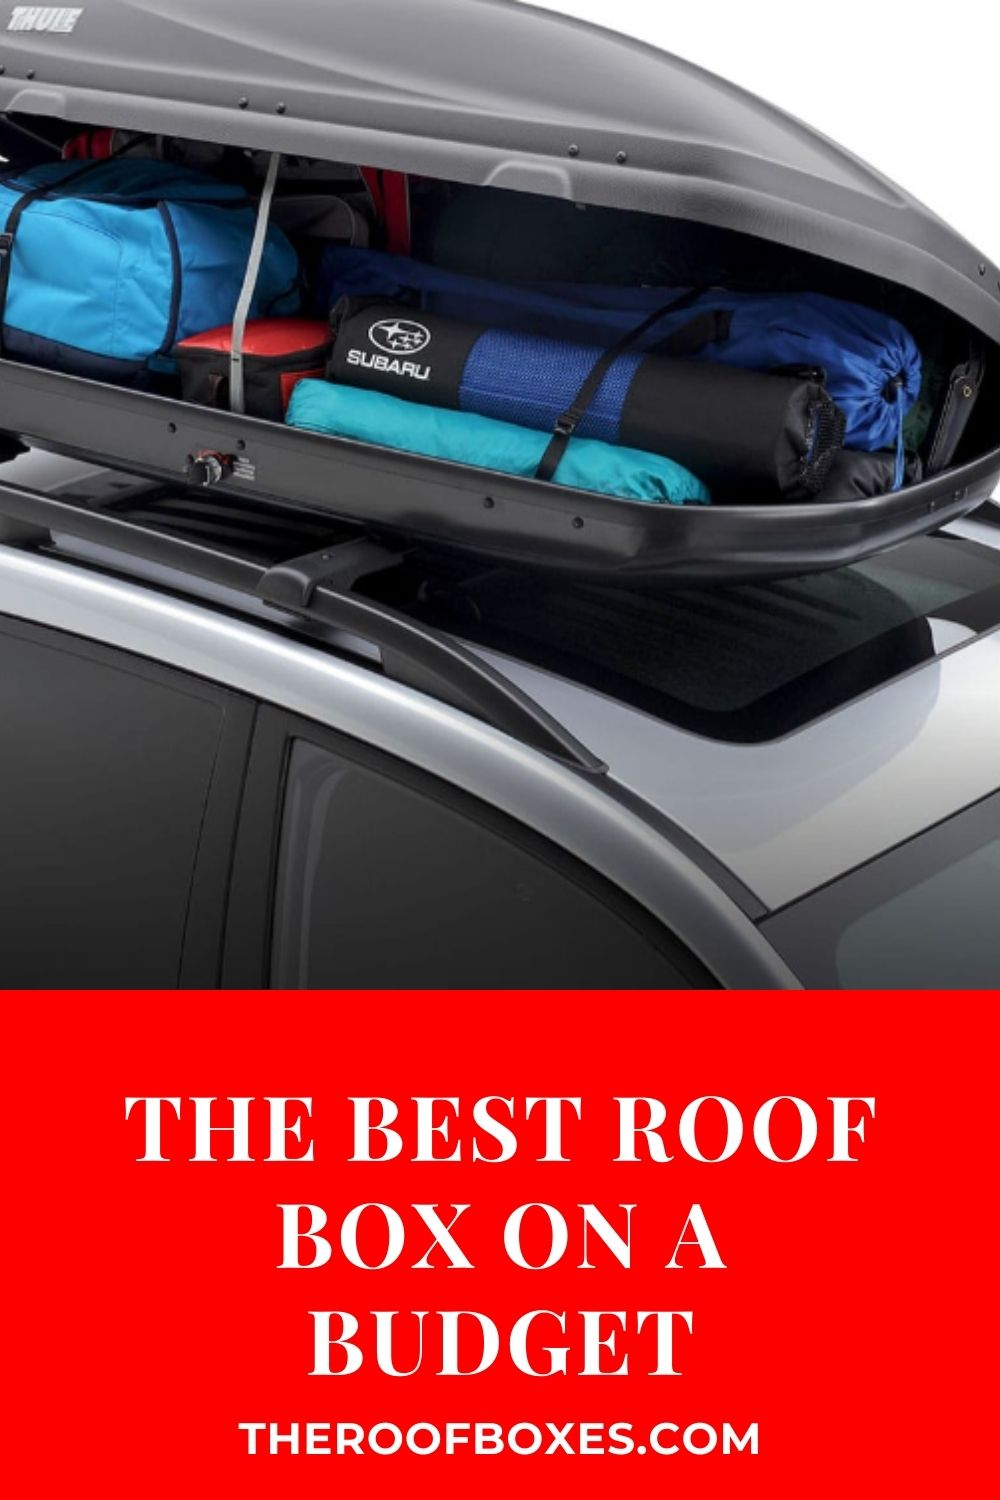 Roof Box On A Budget – Reviews and Comparison